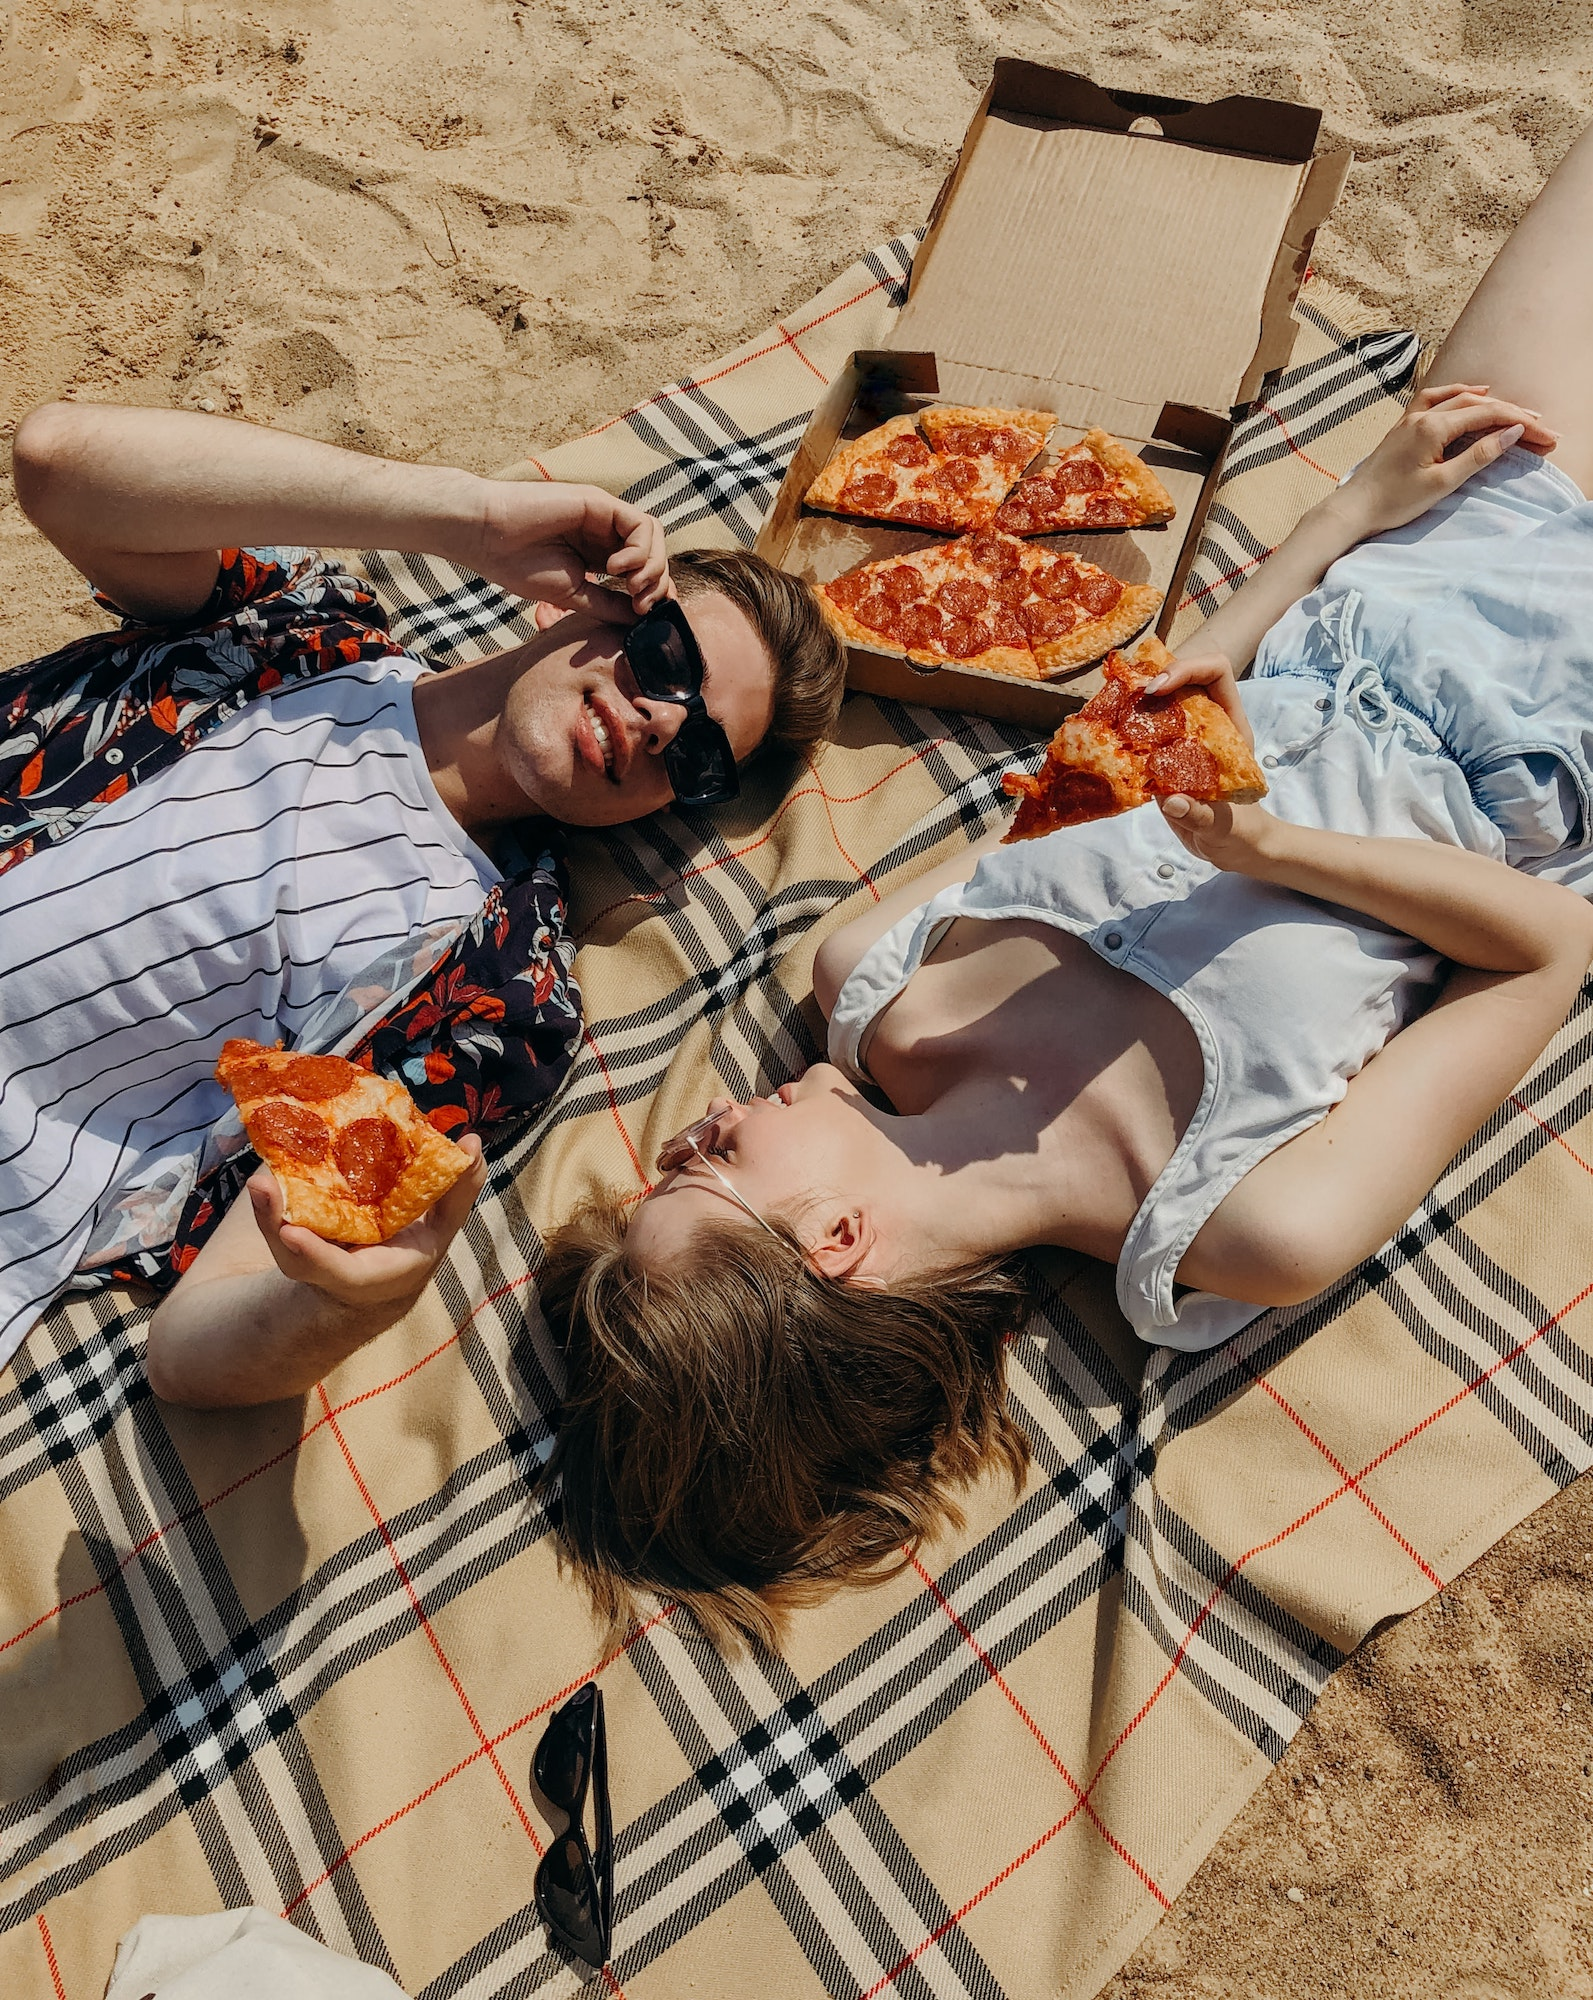 Relationship Healthy | 3 Tips For Finding The Perfect Relationship Online With Dating Apps | Elle Blonde Luxury Lifestyle Destination Blog